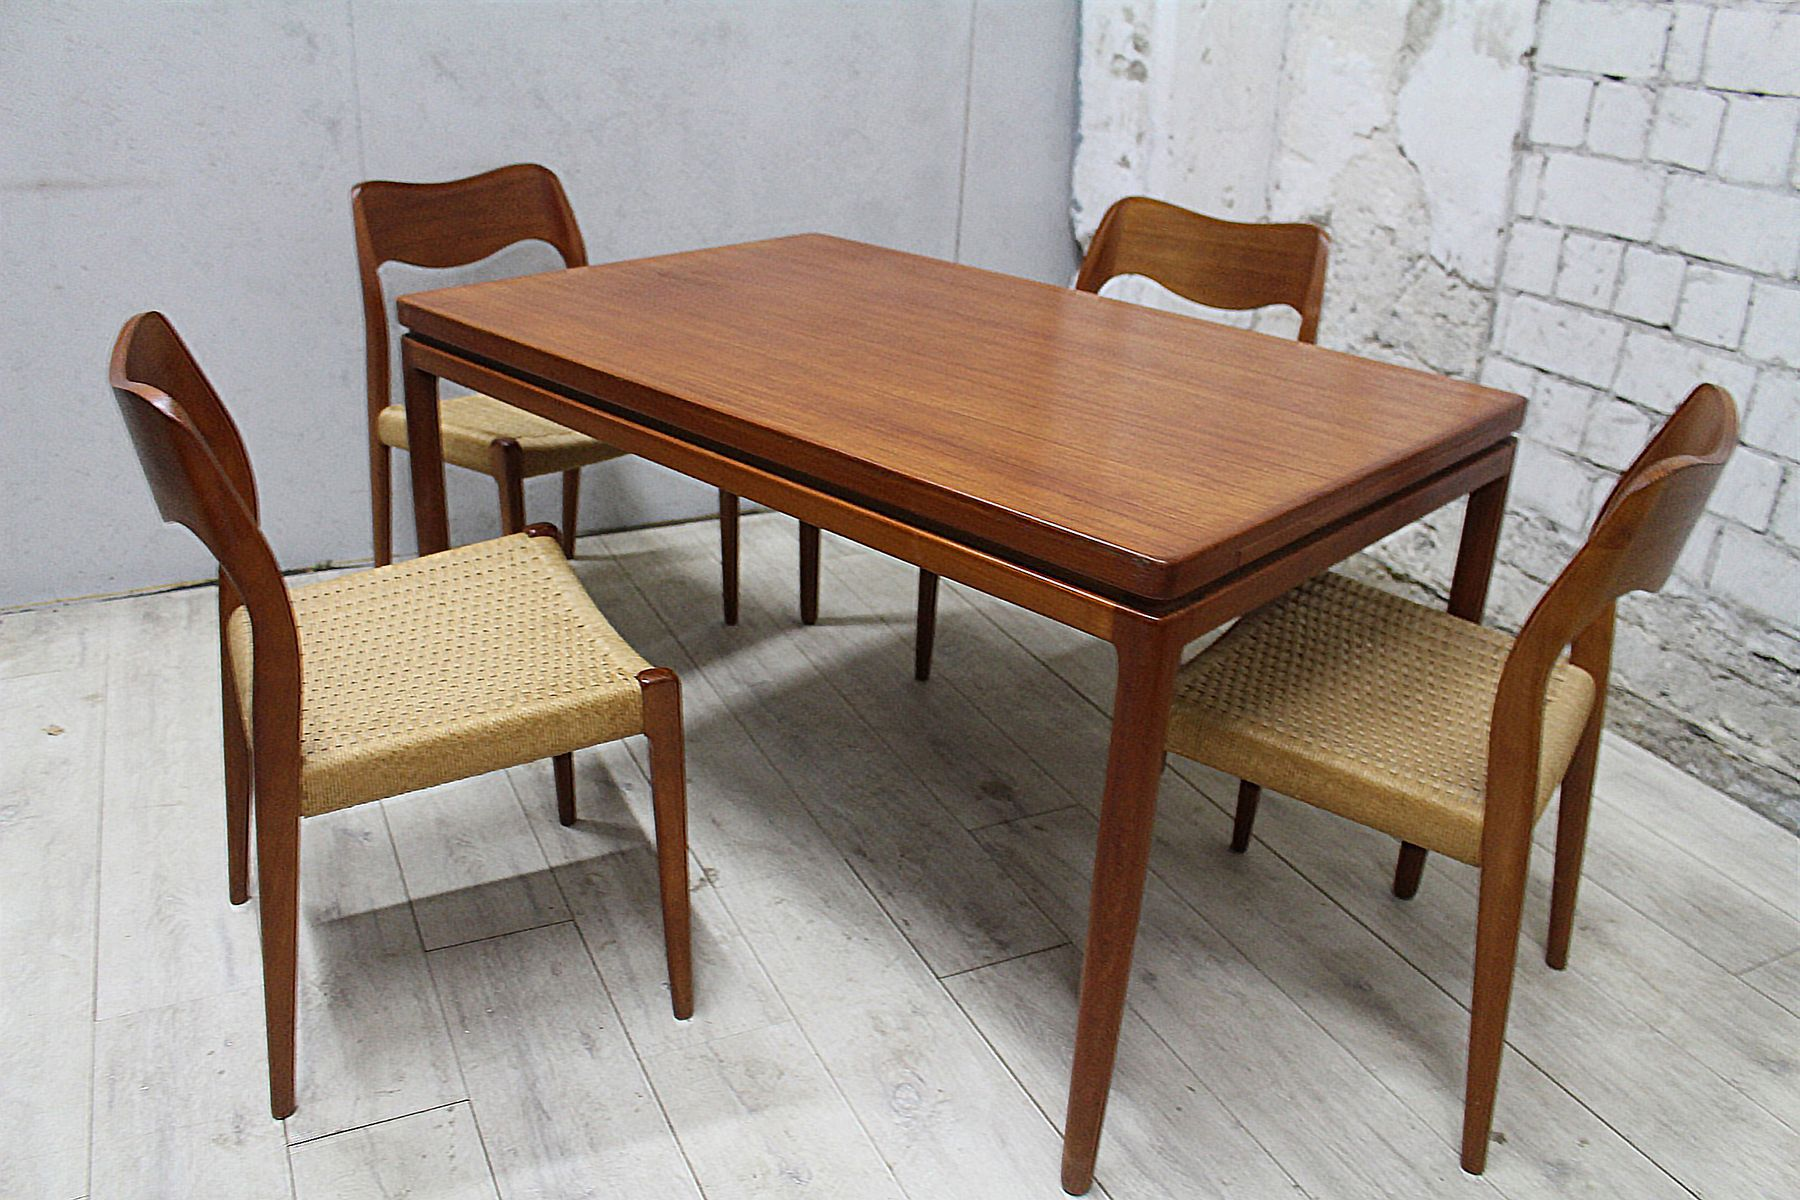 No 75 Chairs and Dining Table Set by N O M¸ller for J L M¸llers